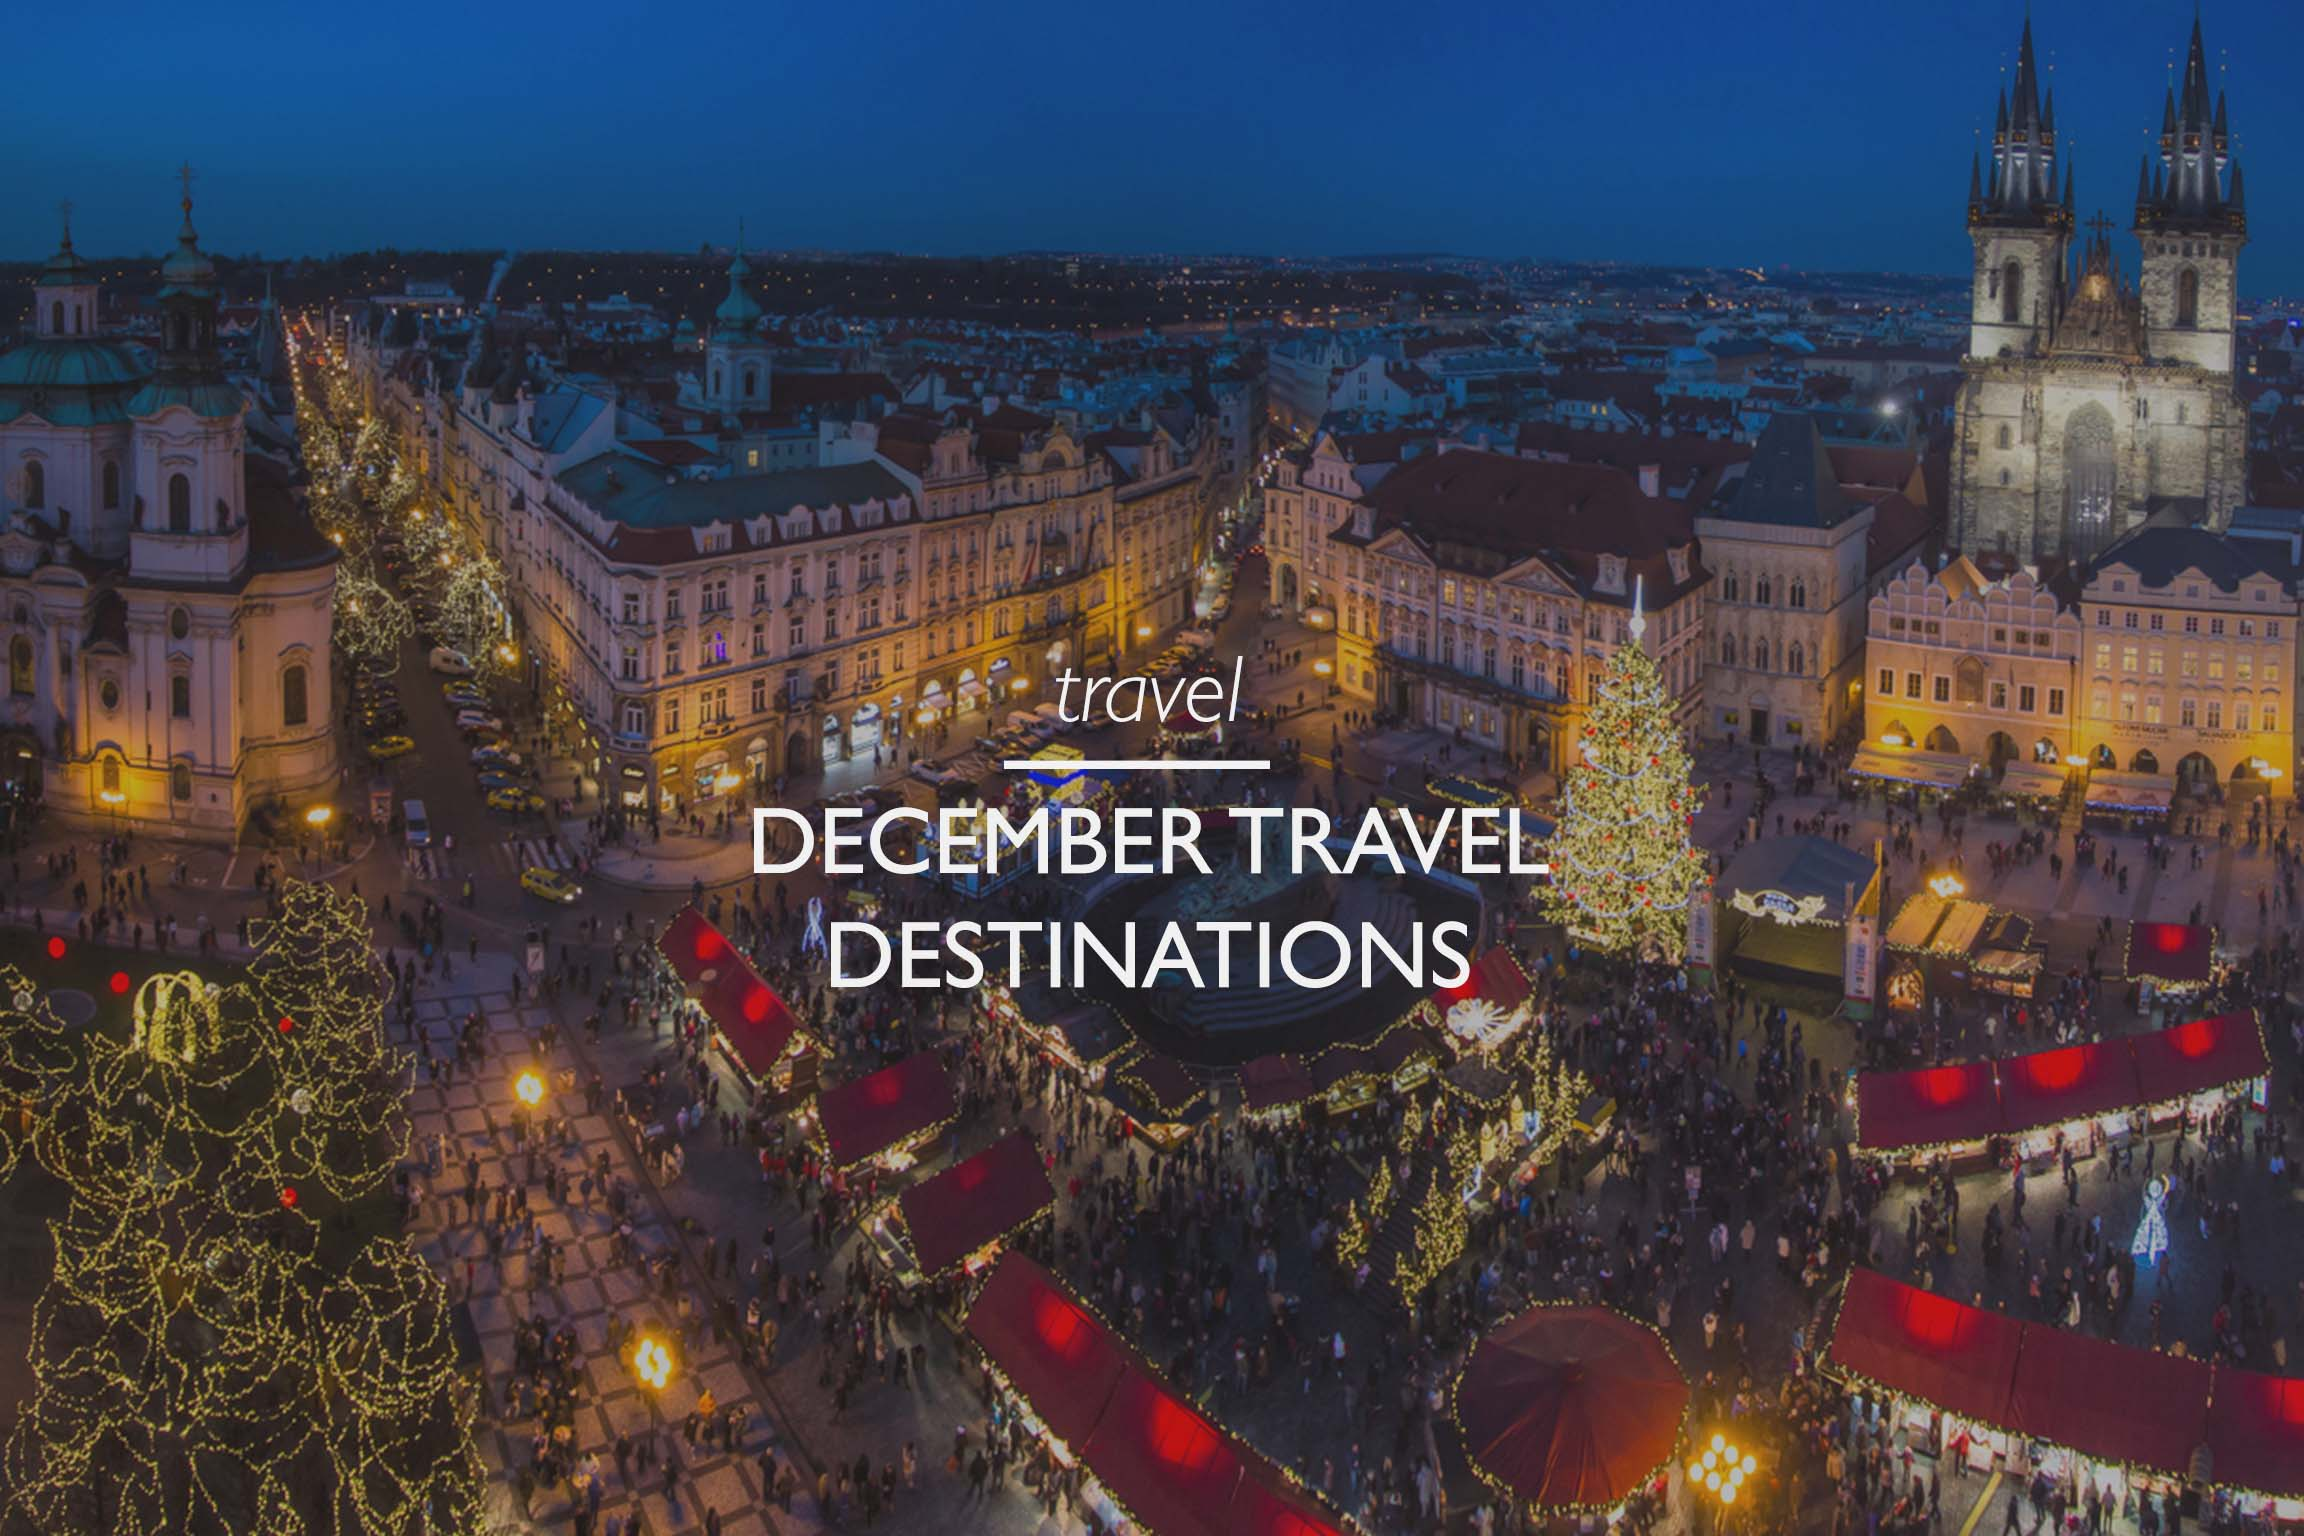 Copy of Copy of Copy of Copy of Copy of Copy of Top December Travel Destinations